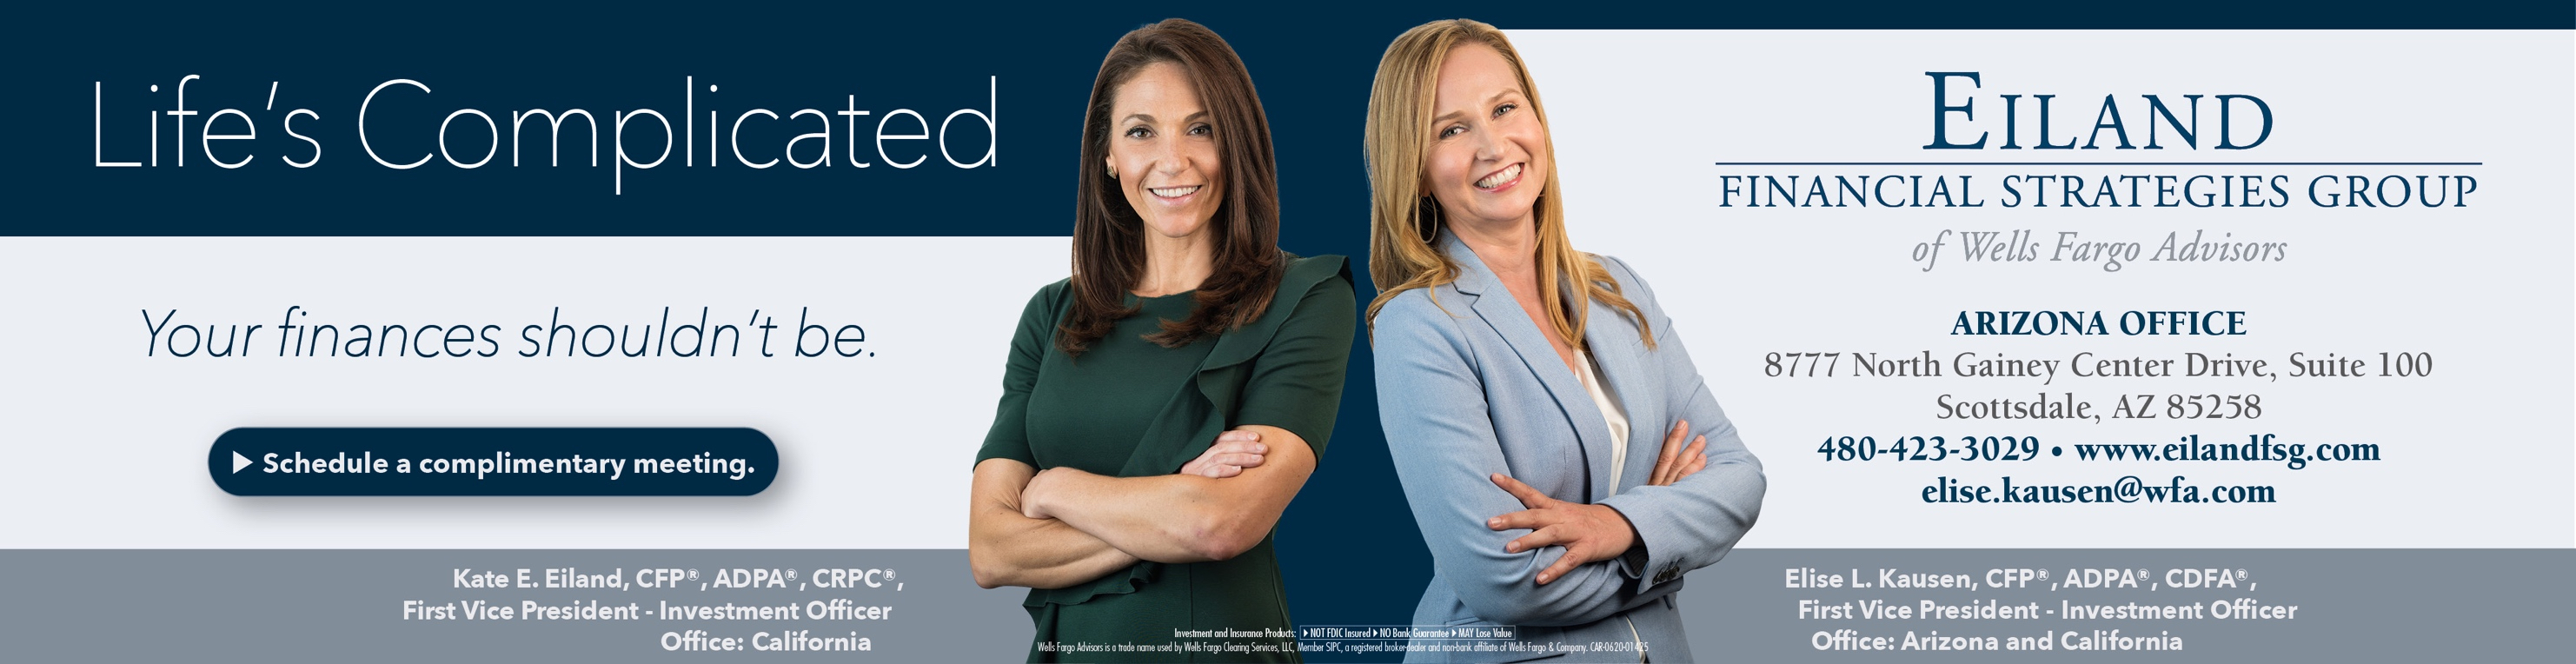 Visit Eiland Financial Strategies Group billboard